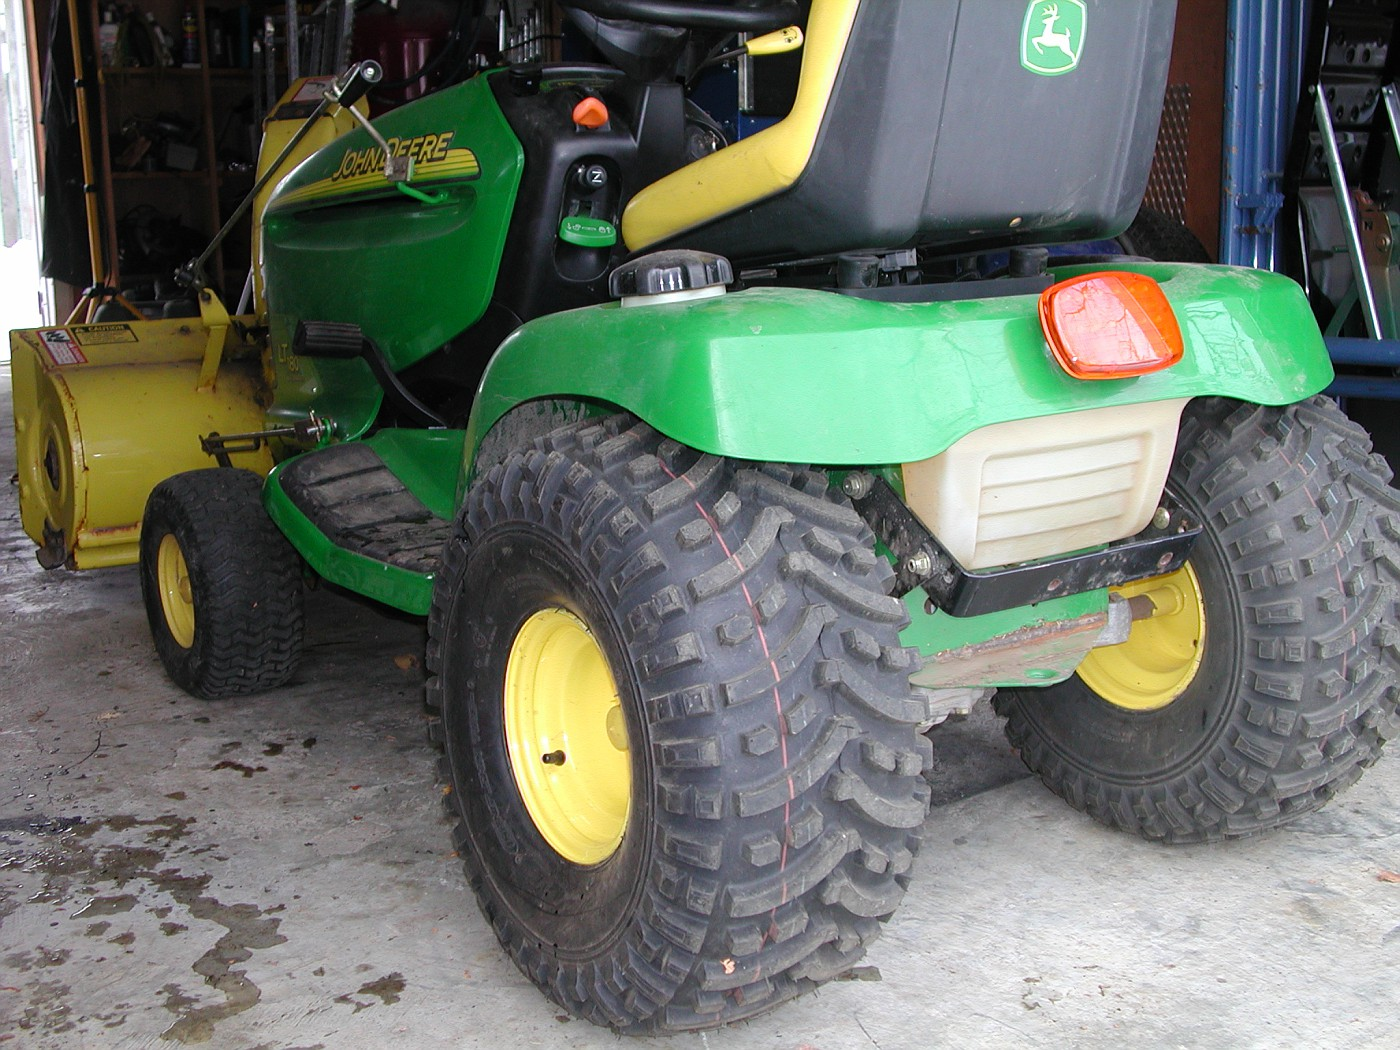 Tractor Safety Lights : Mytractorforum the friendliest tractor forum and